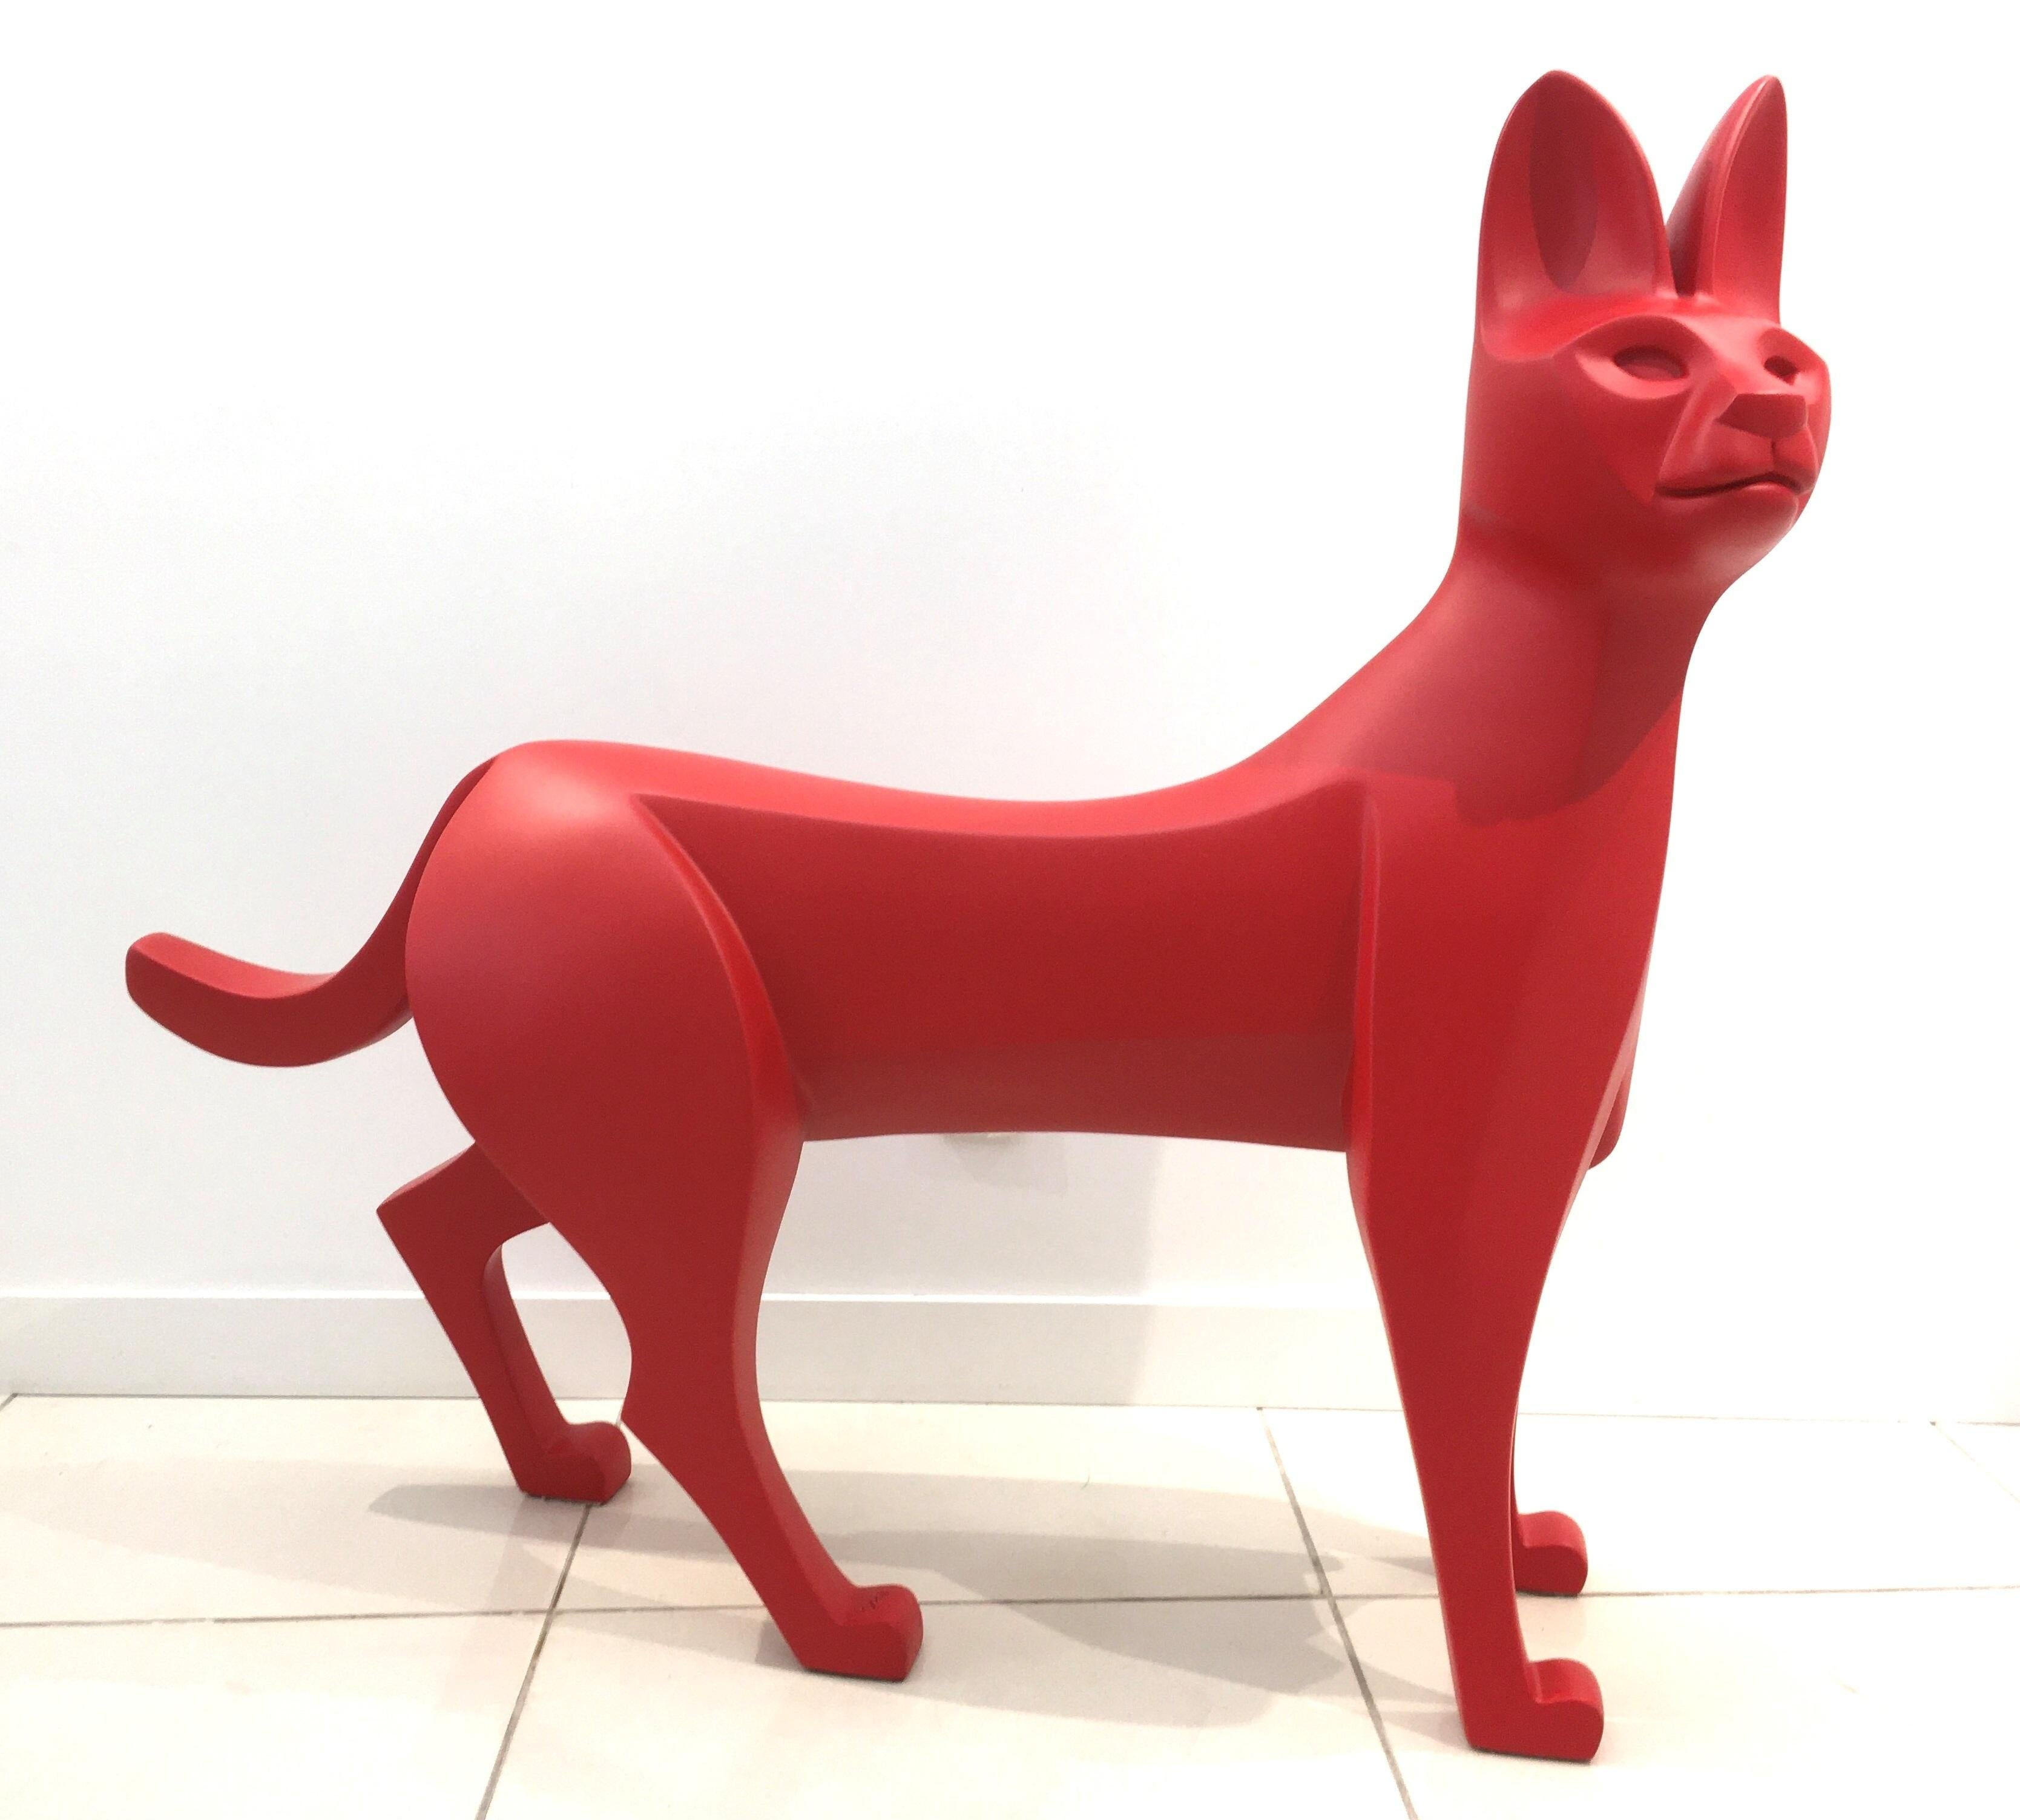 The Serval by Eric Valat - Functional Sculpture (bench) of Wild Cat, Polyester